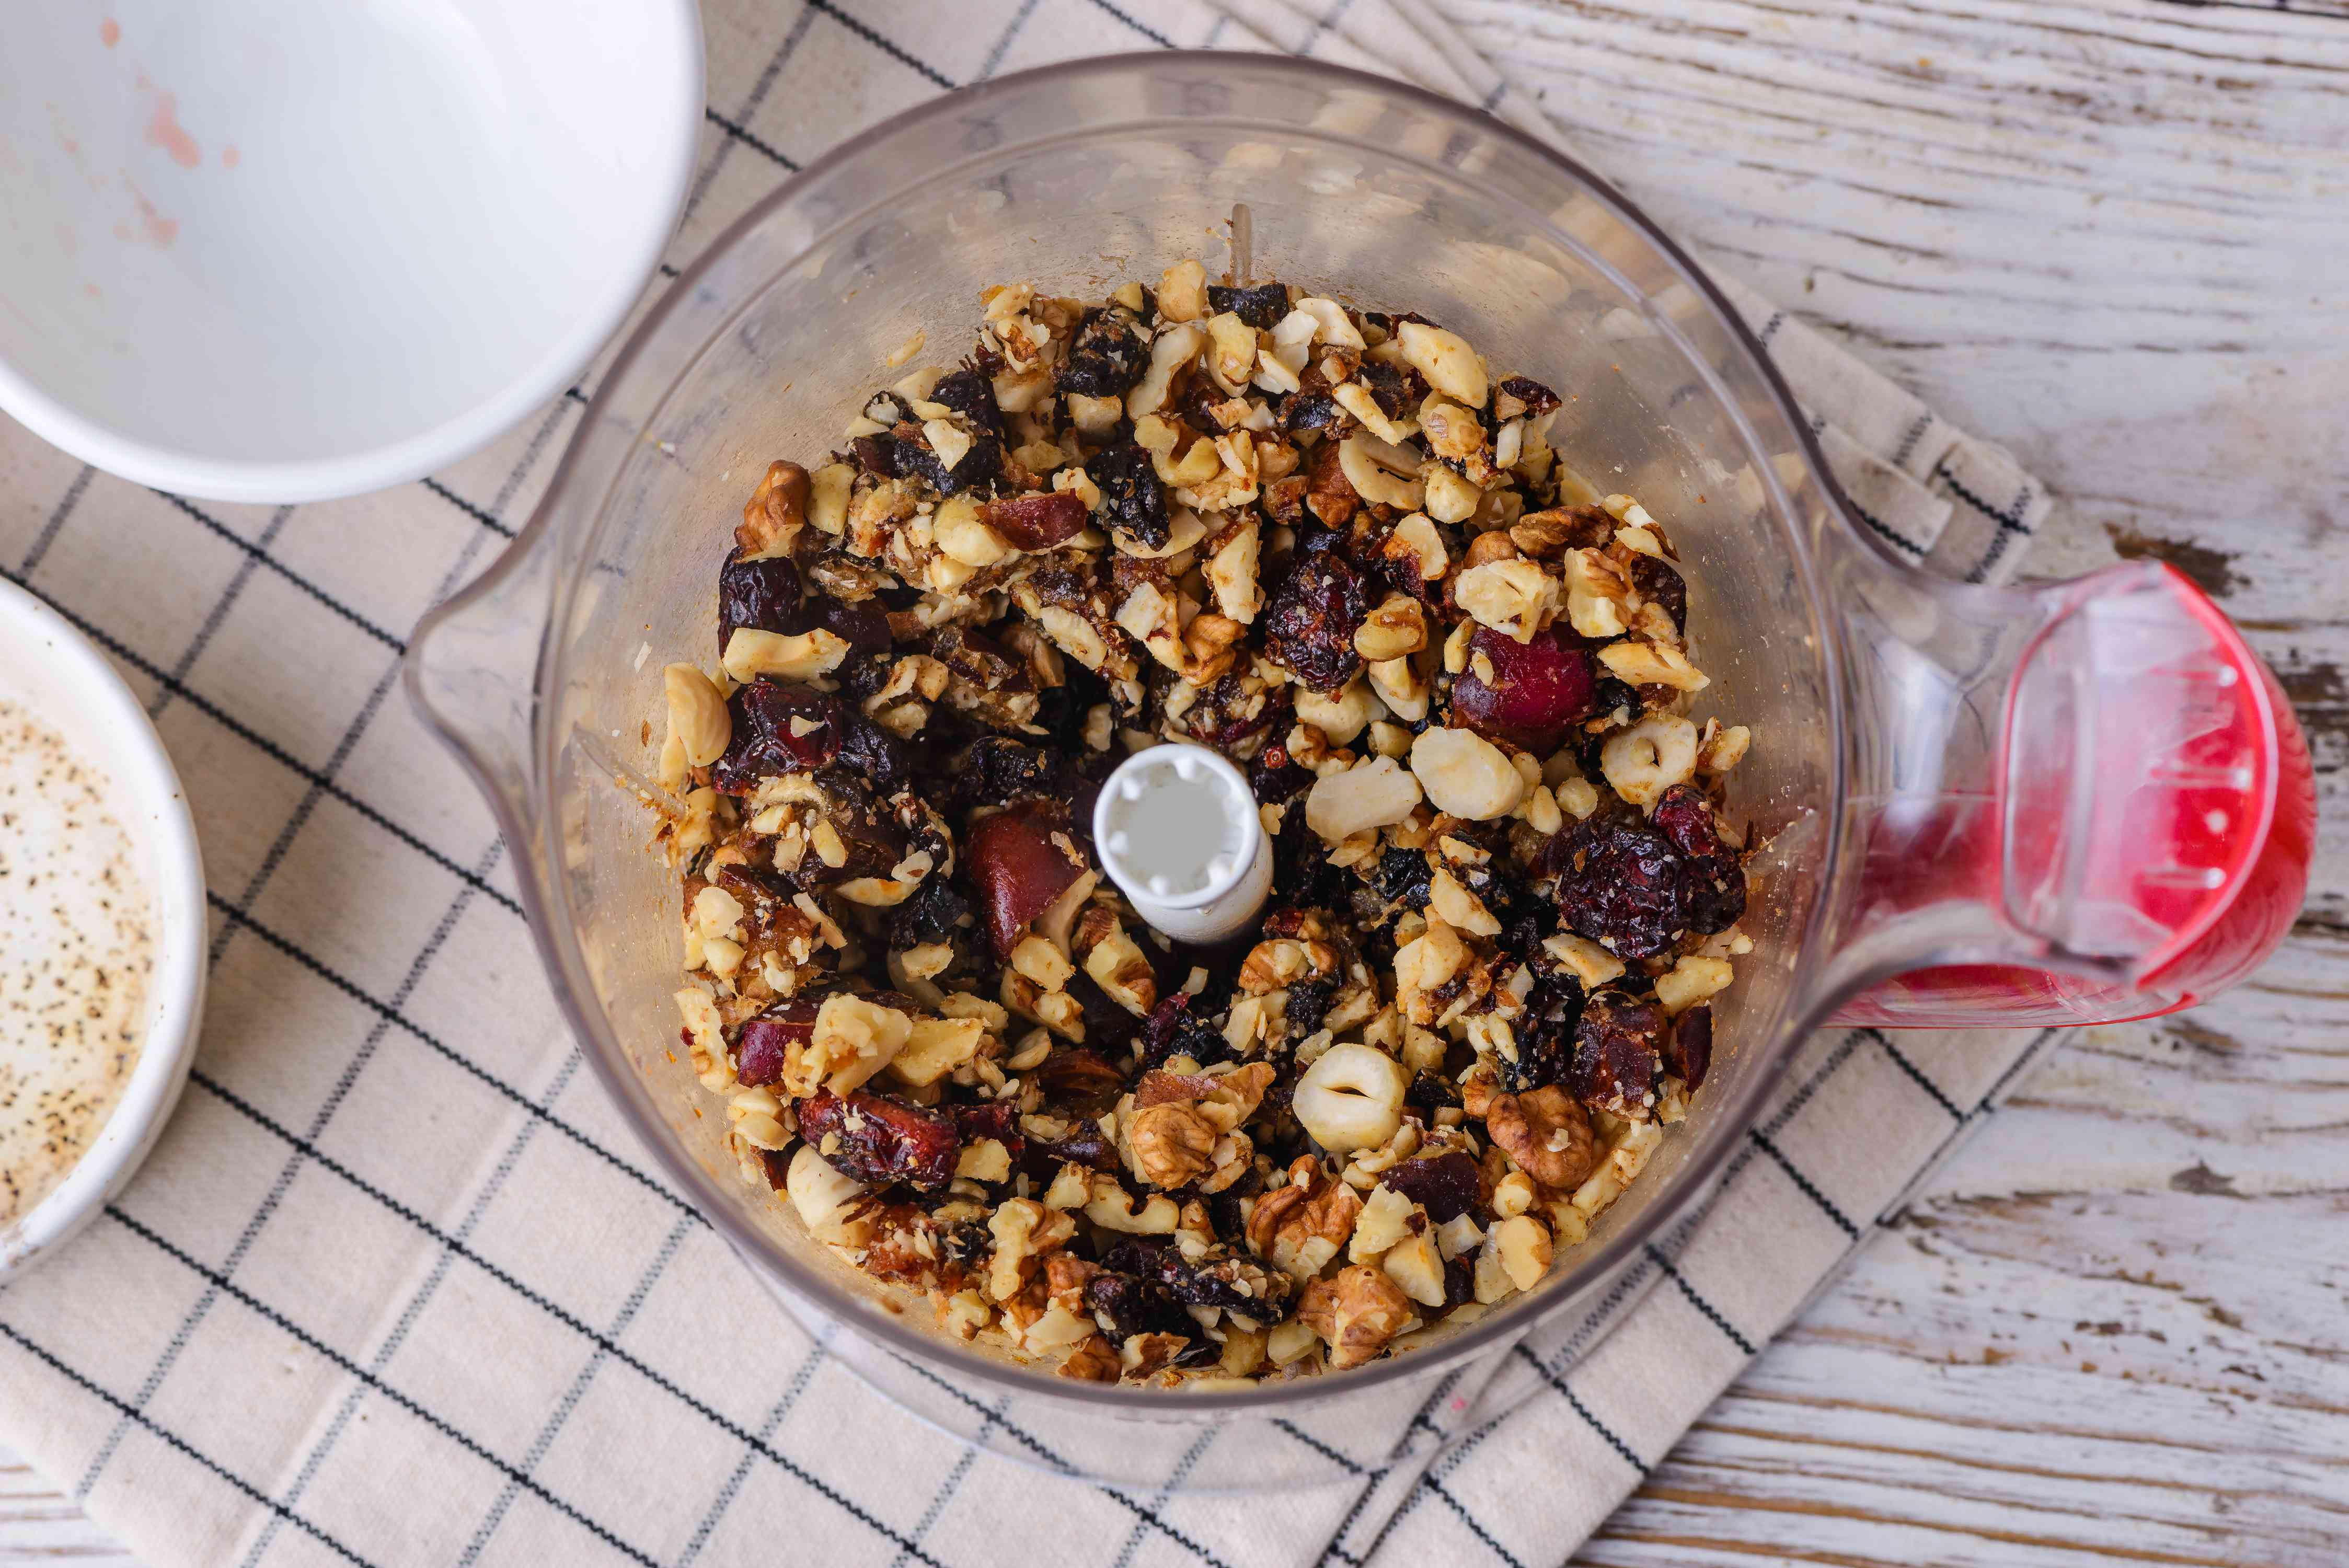 Place dates, walnuts, cranberries, prunes, and hazelnuts in food processor